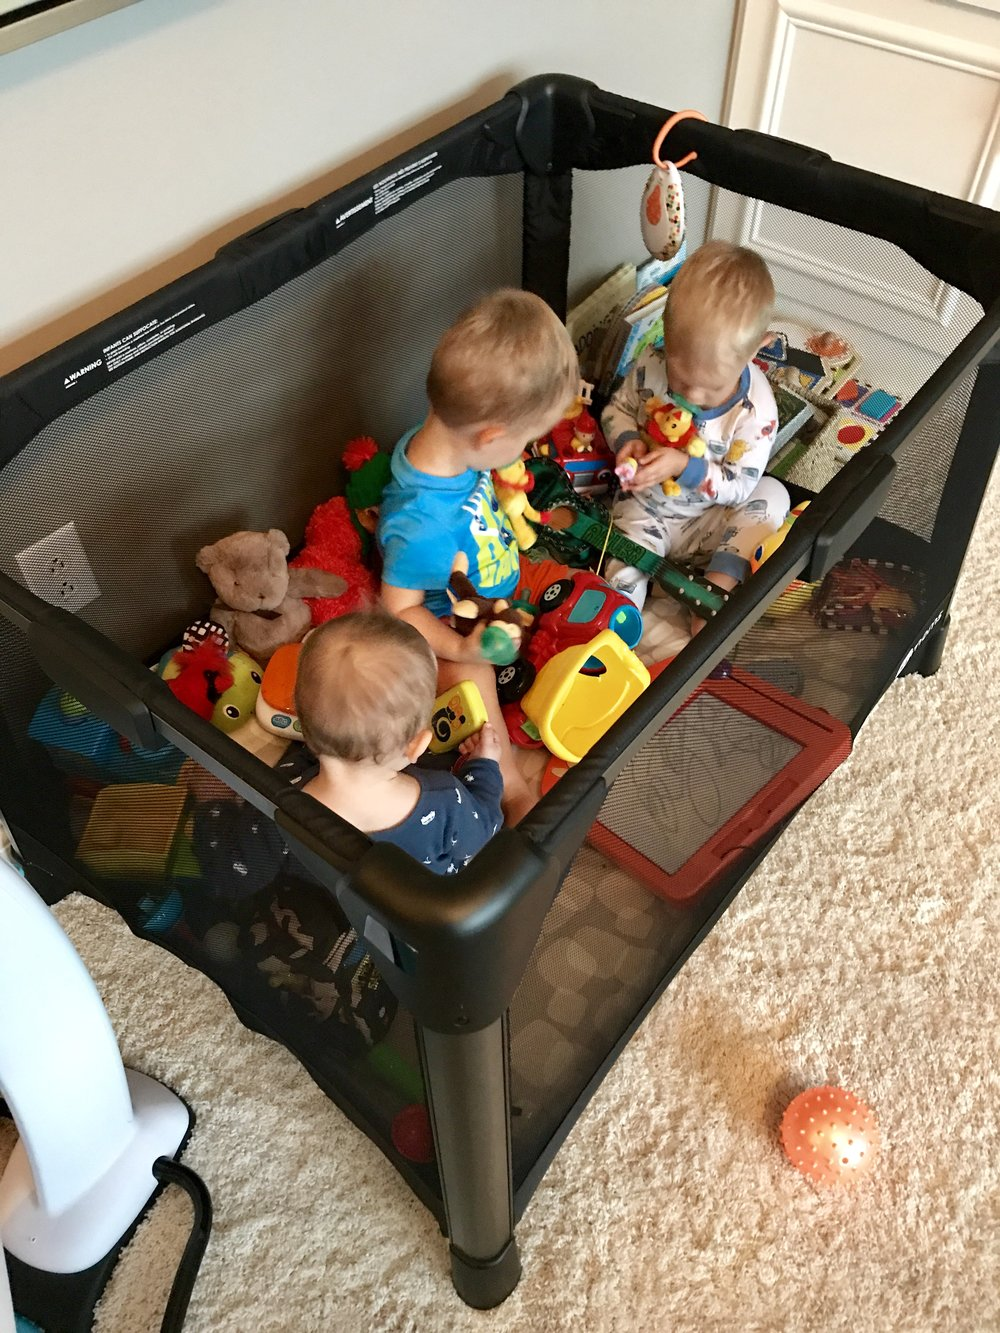 #SoManyBabies My rule: don't hang on to anything, it just depreciates!